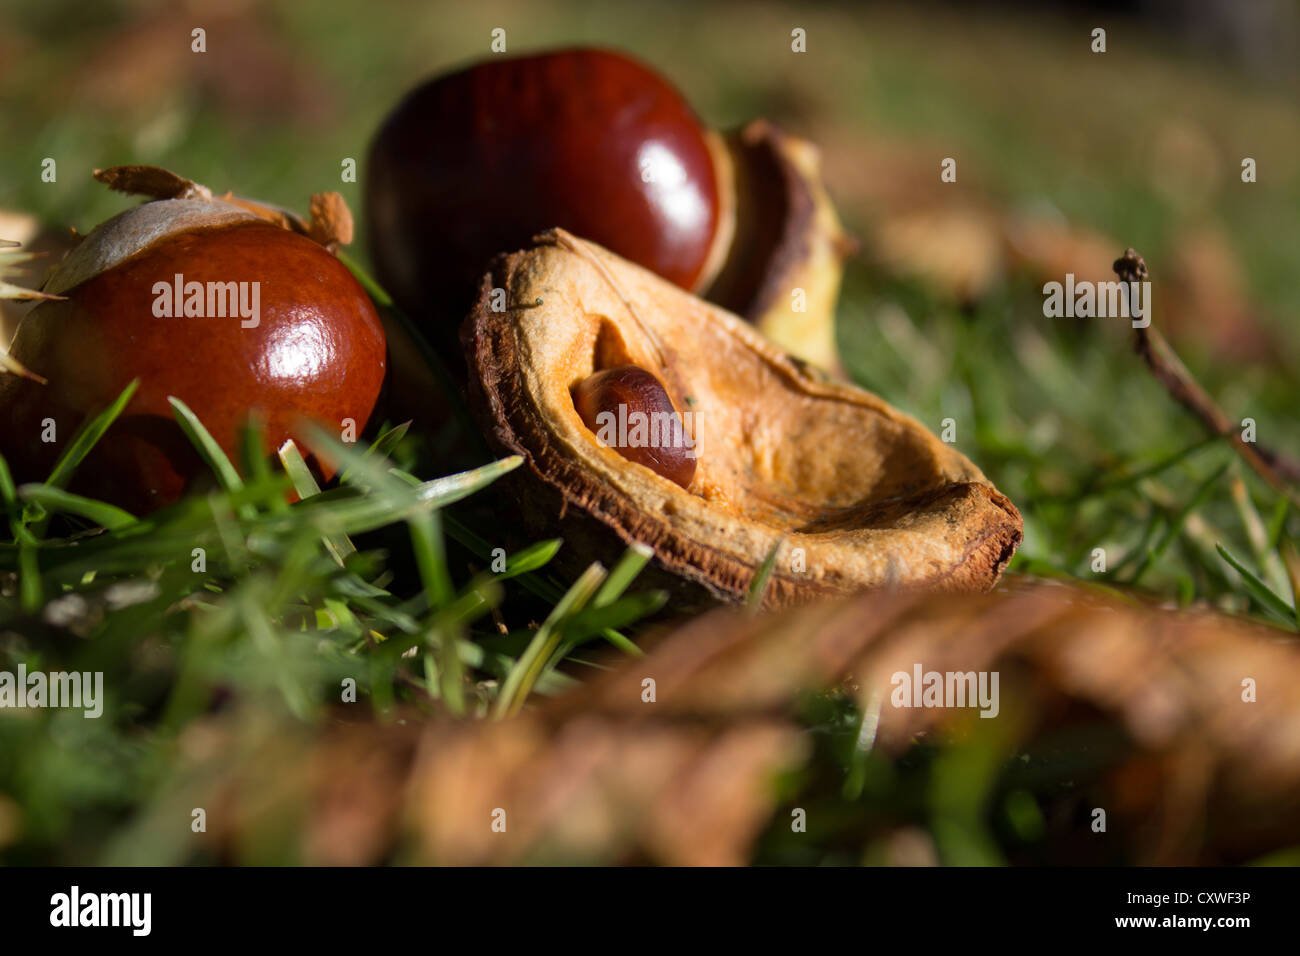 Conker and shell - Stock Image